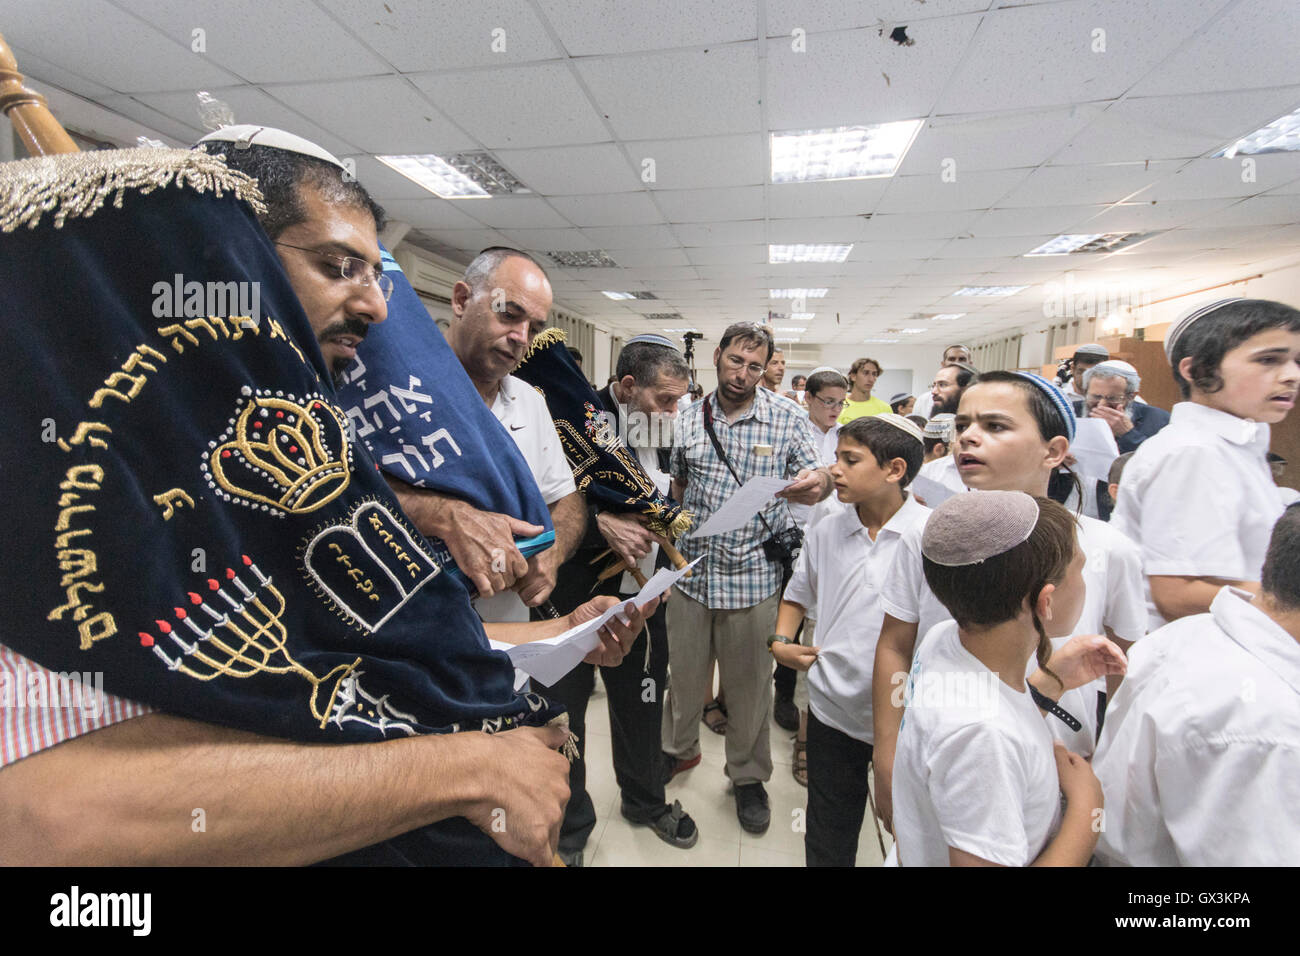 Neria, Israel. 15th September, 2016. Neria, Israel/West Bank. Celebrating the inauguration of a Torah scroll (Bible), - Stock Image